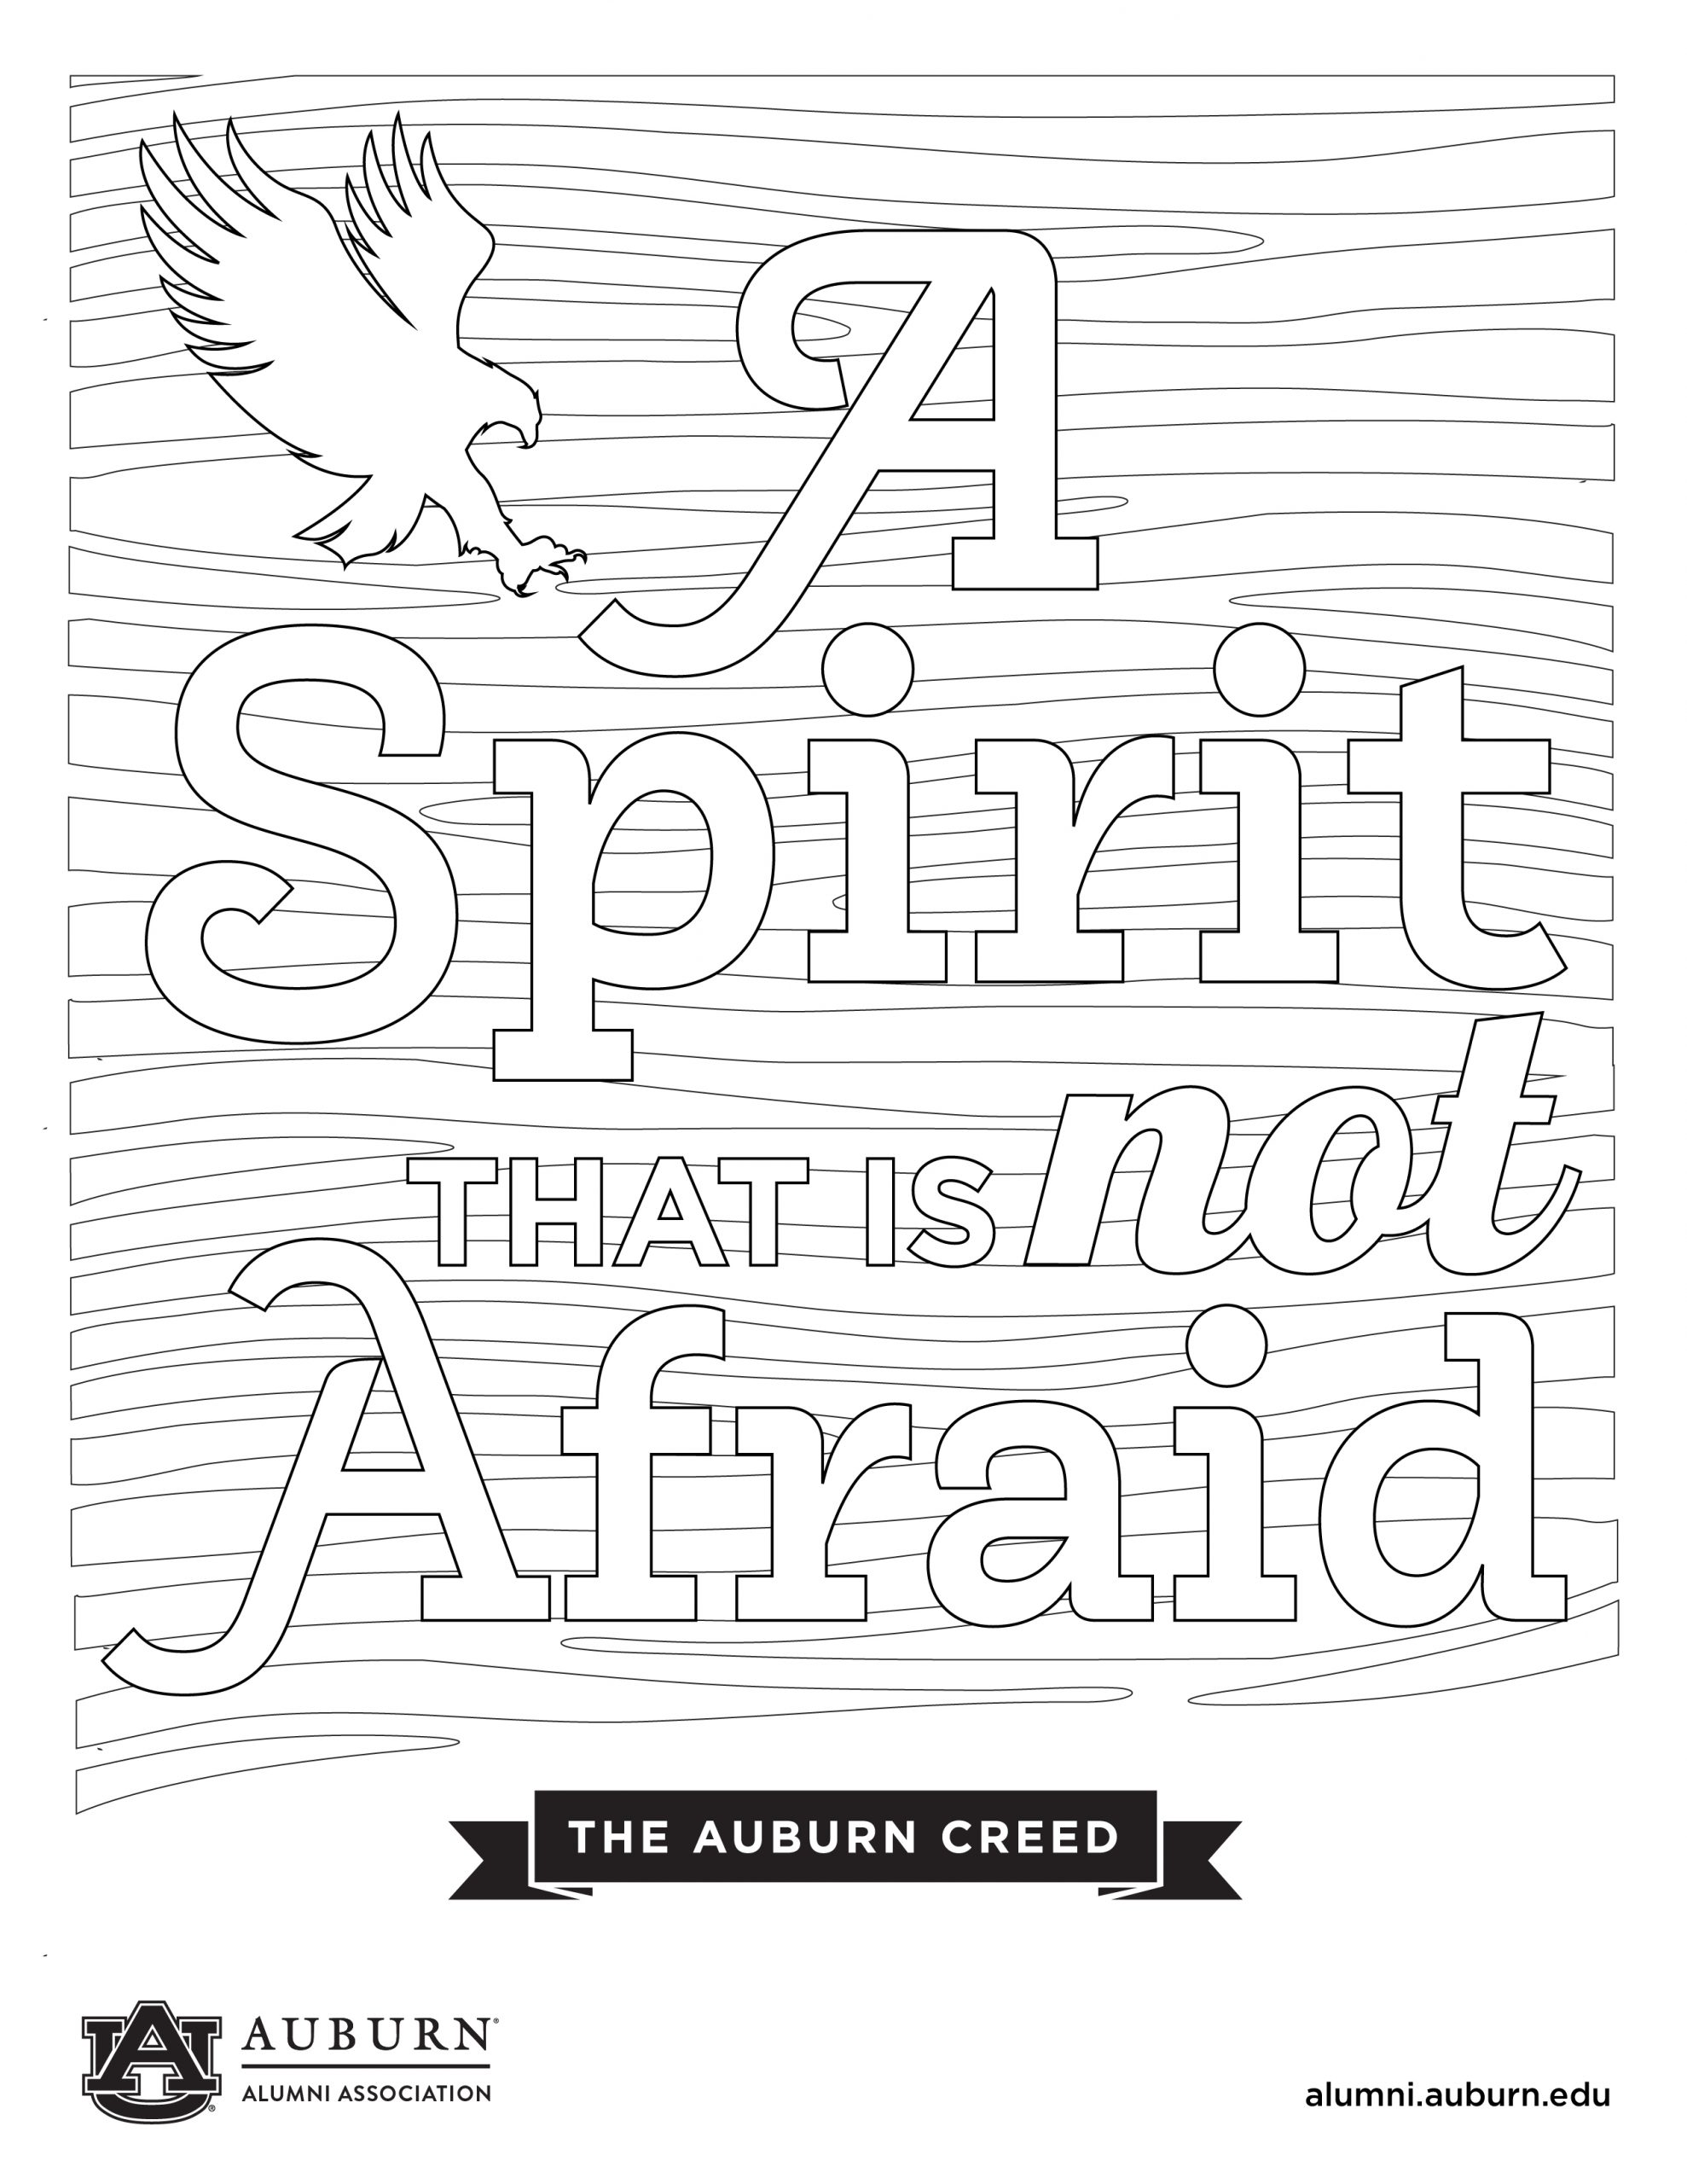 A Spirit is not afraid coloring sheet